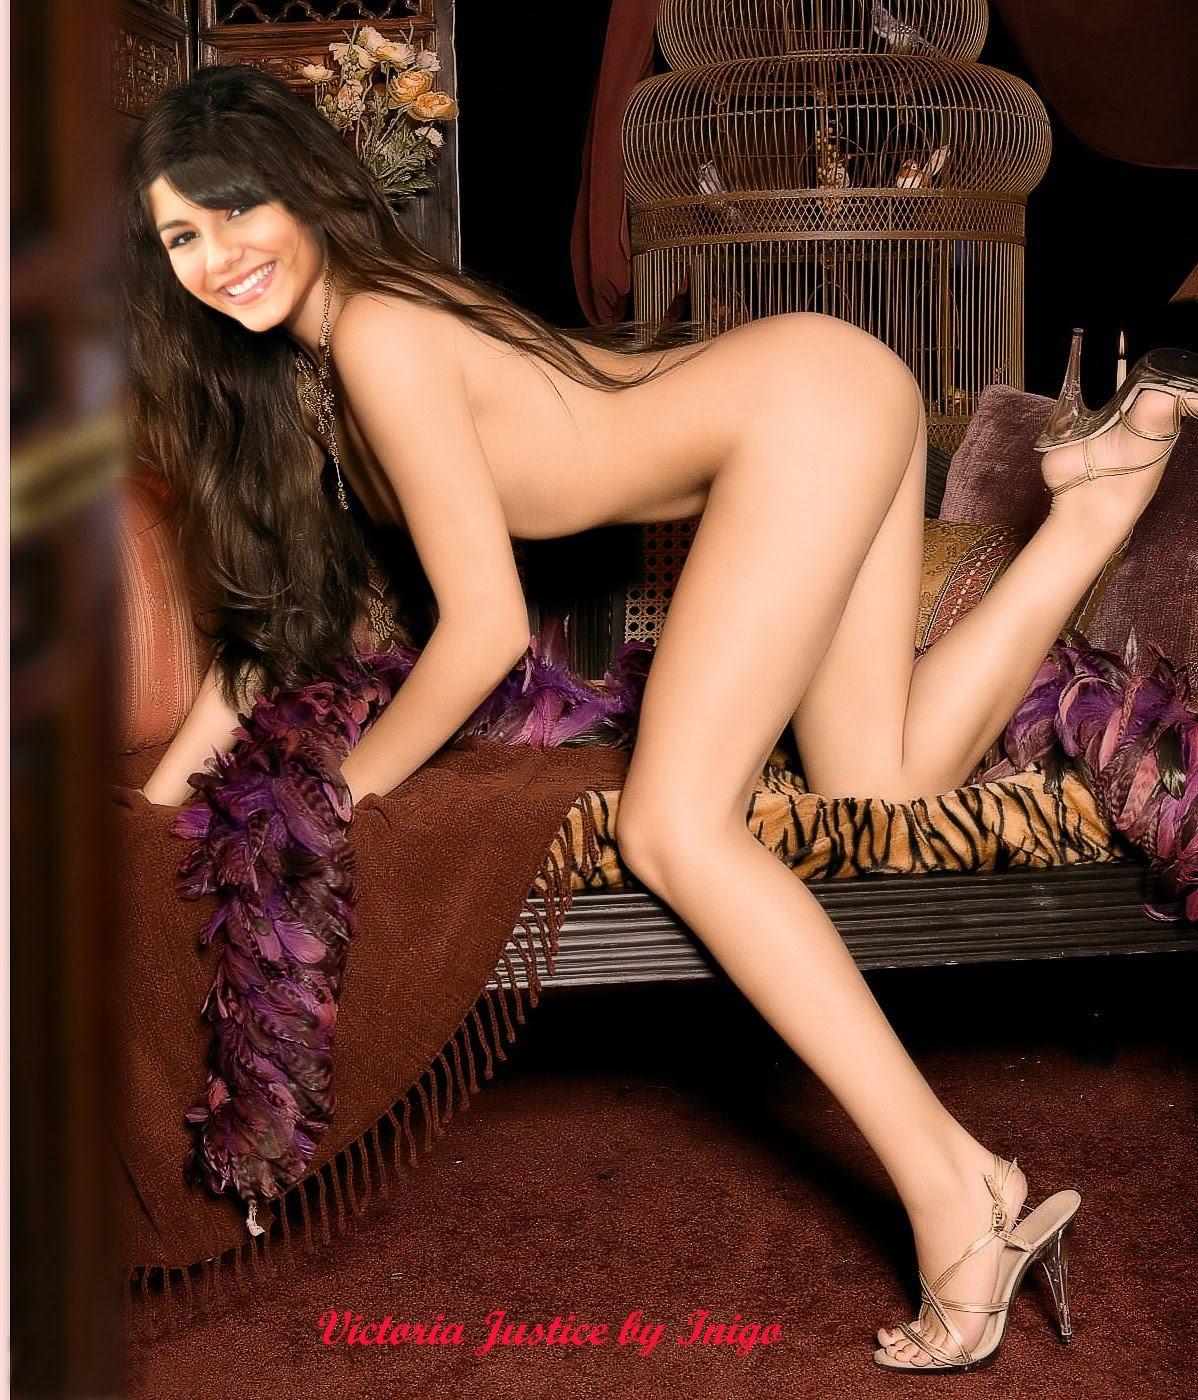 Fake Nude Victoria Justice with naked sex porn: victoria justice fake nude